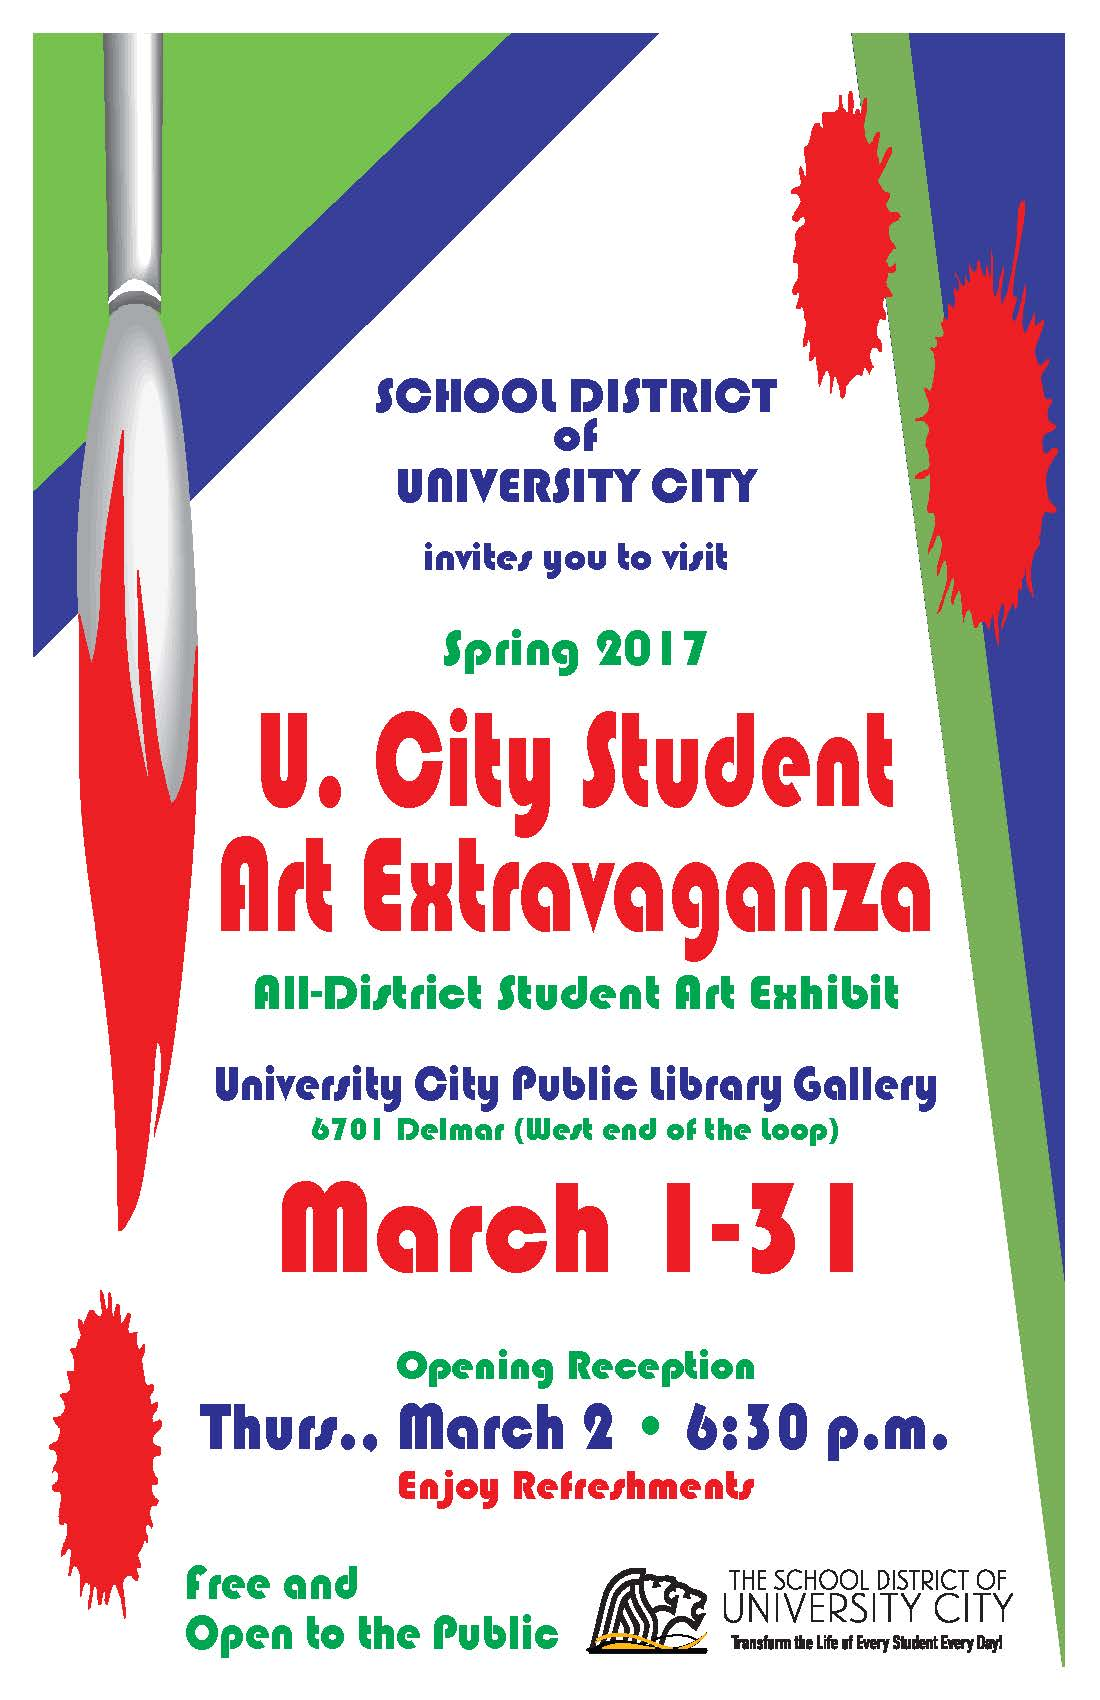 Student Art Exhibit Open 'til March 31